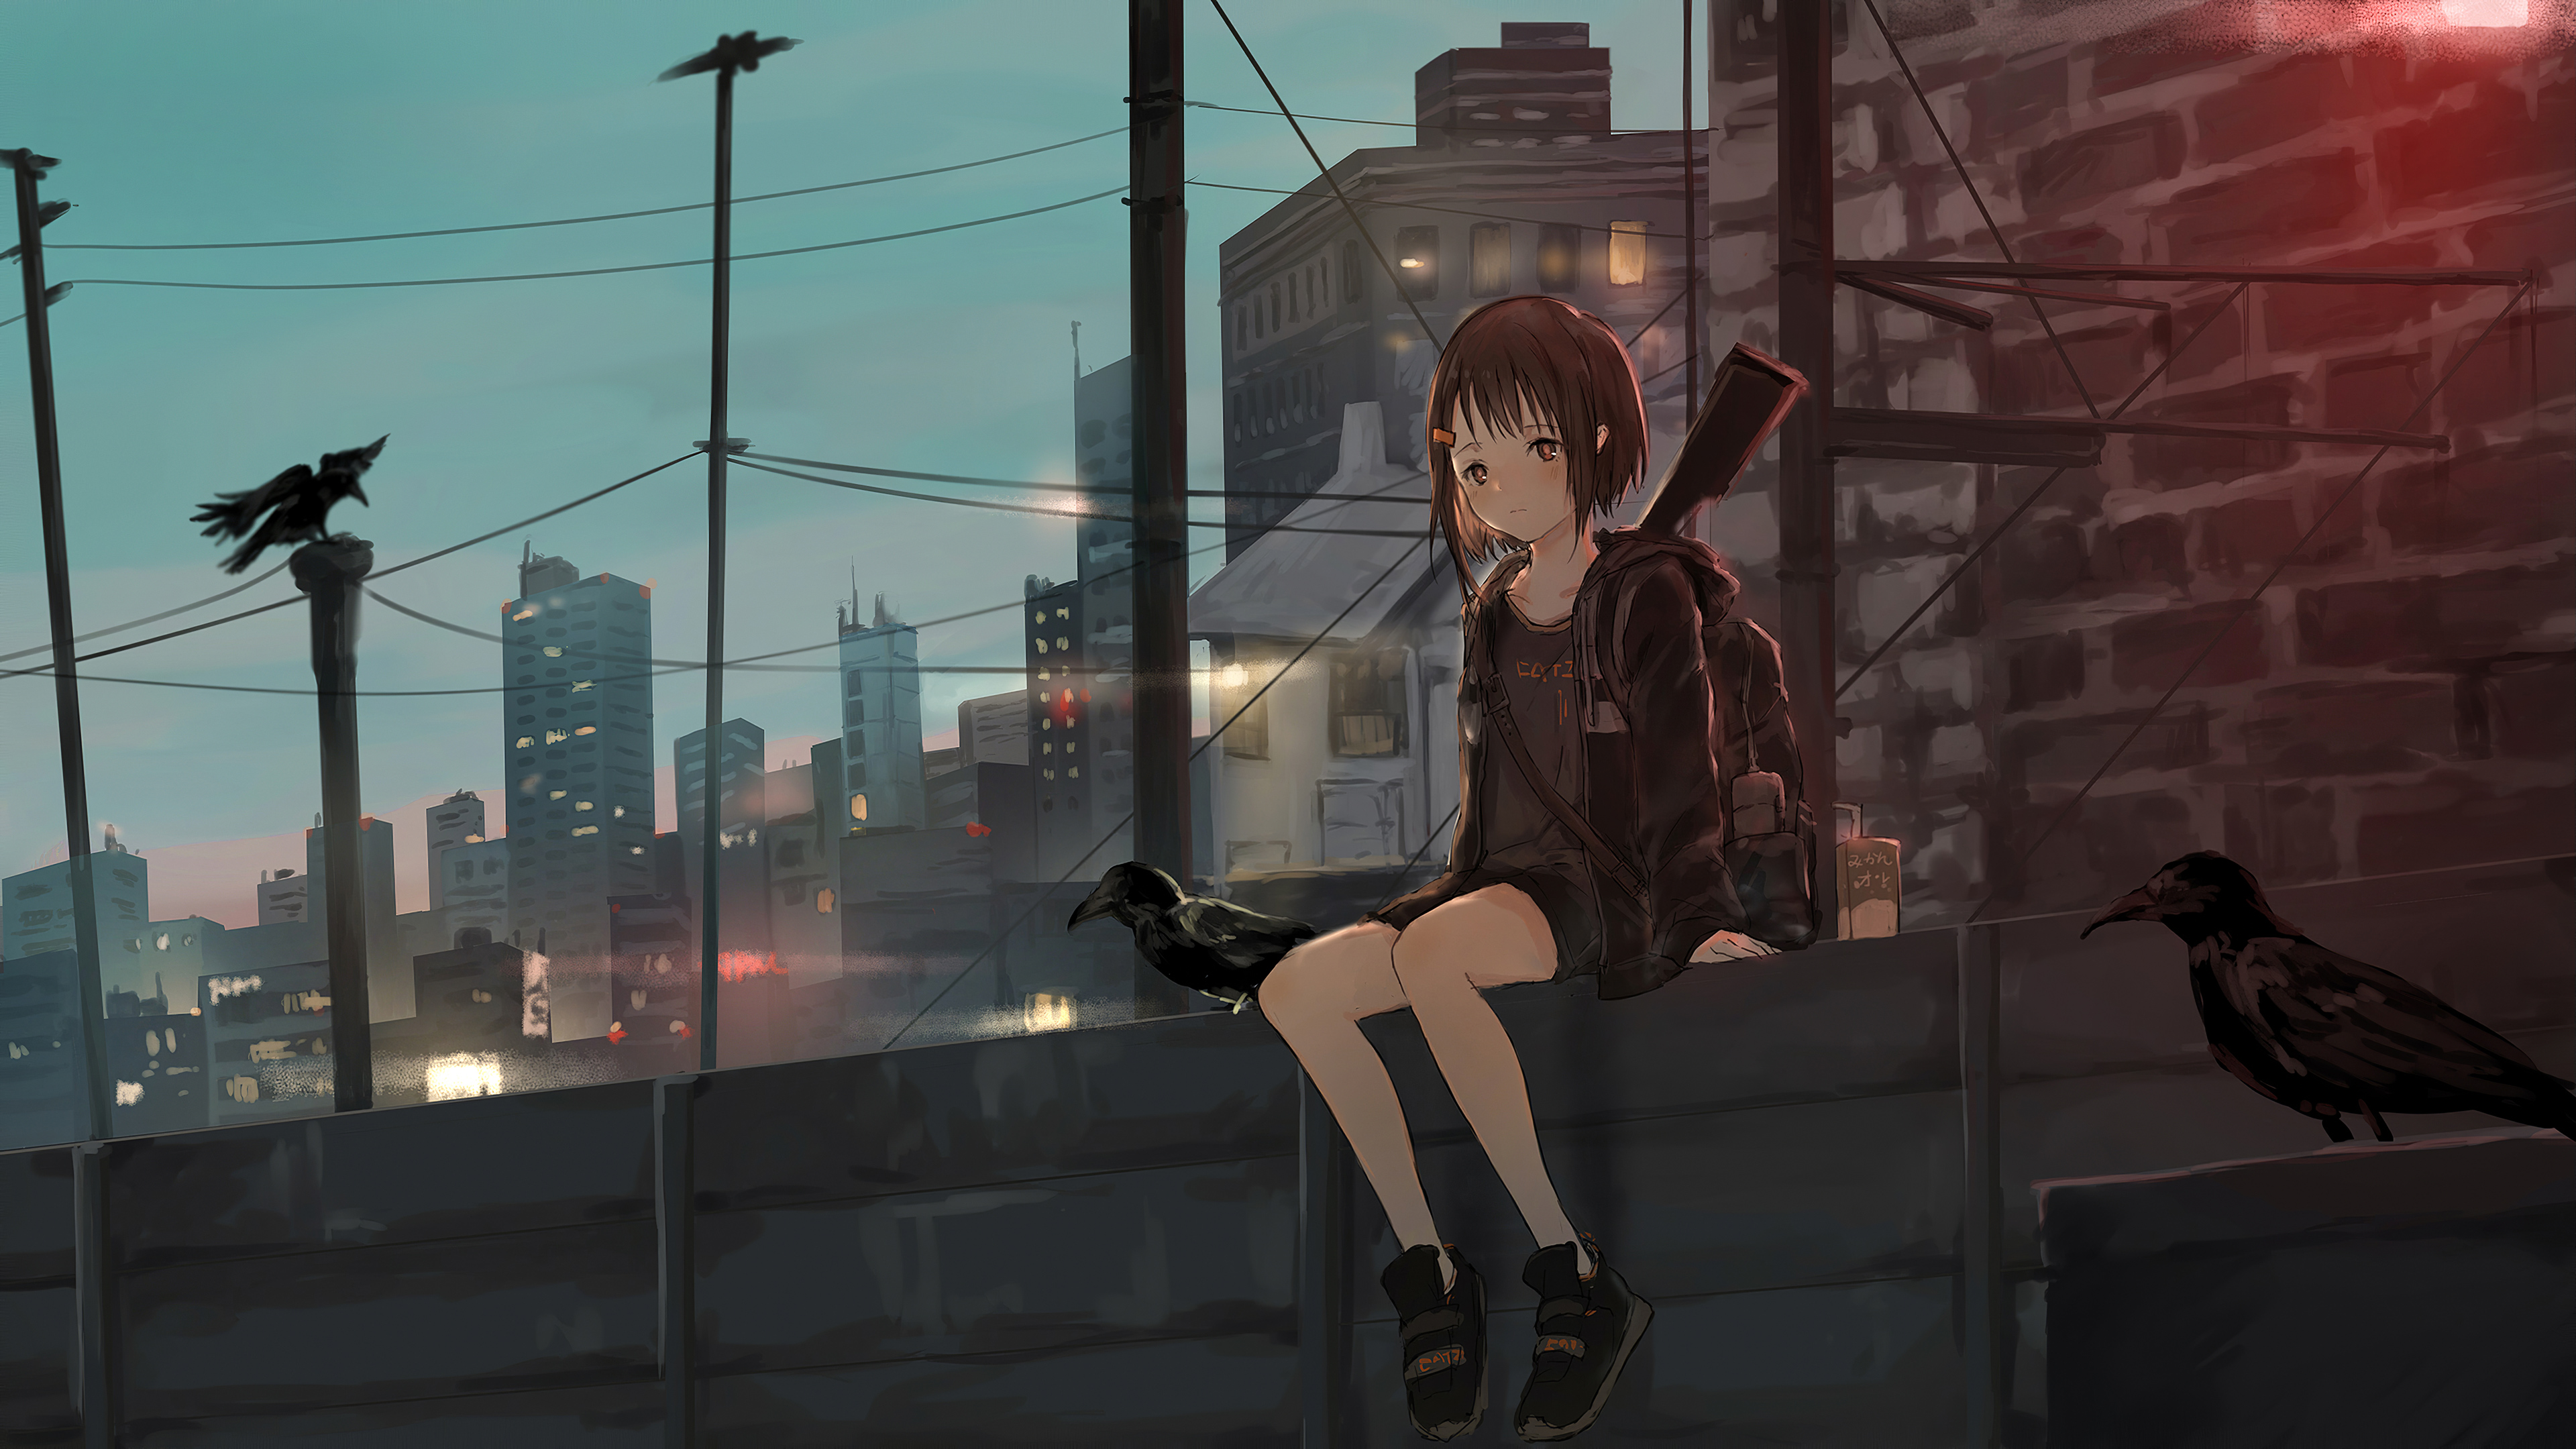 Anime Girl Sitting Alone Roof Sad 4k Hd Anime 4k